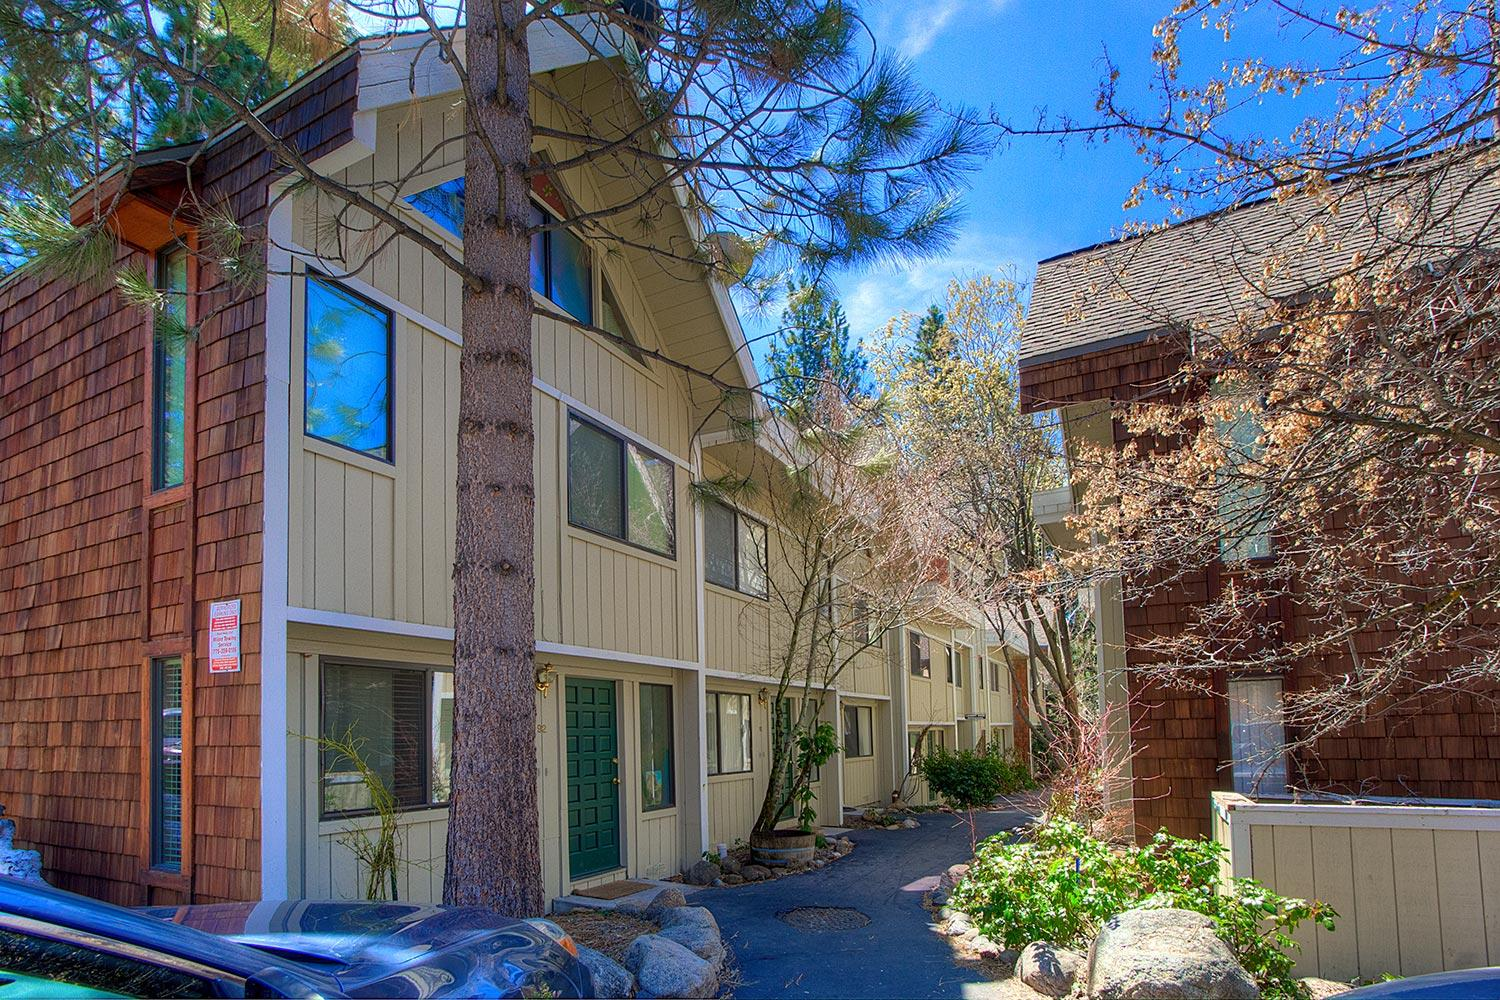 ivc0886 Incline Village Vacation Rental